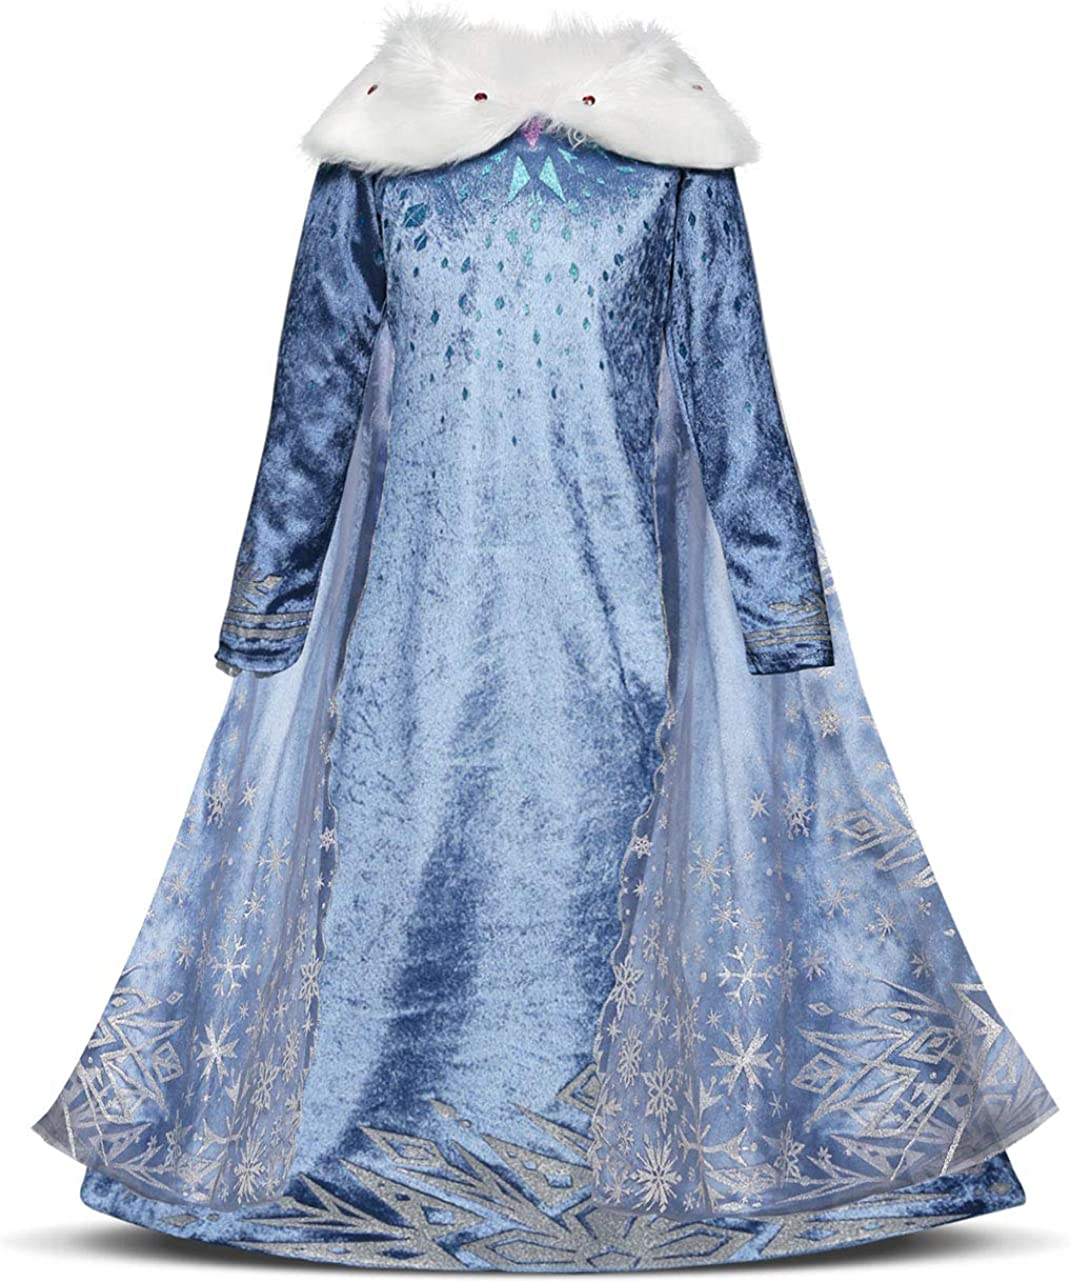 HenzWorld Little Girls Clothes Dress Costume Pajamas Nightgowns Princess Birthday Cosplay Party Outfits Blue